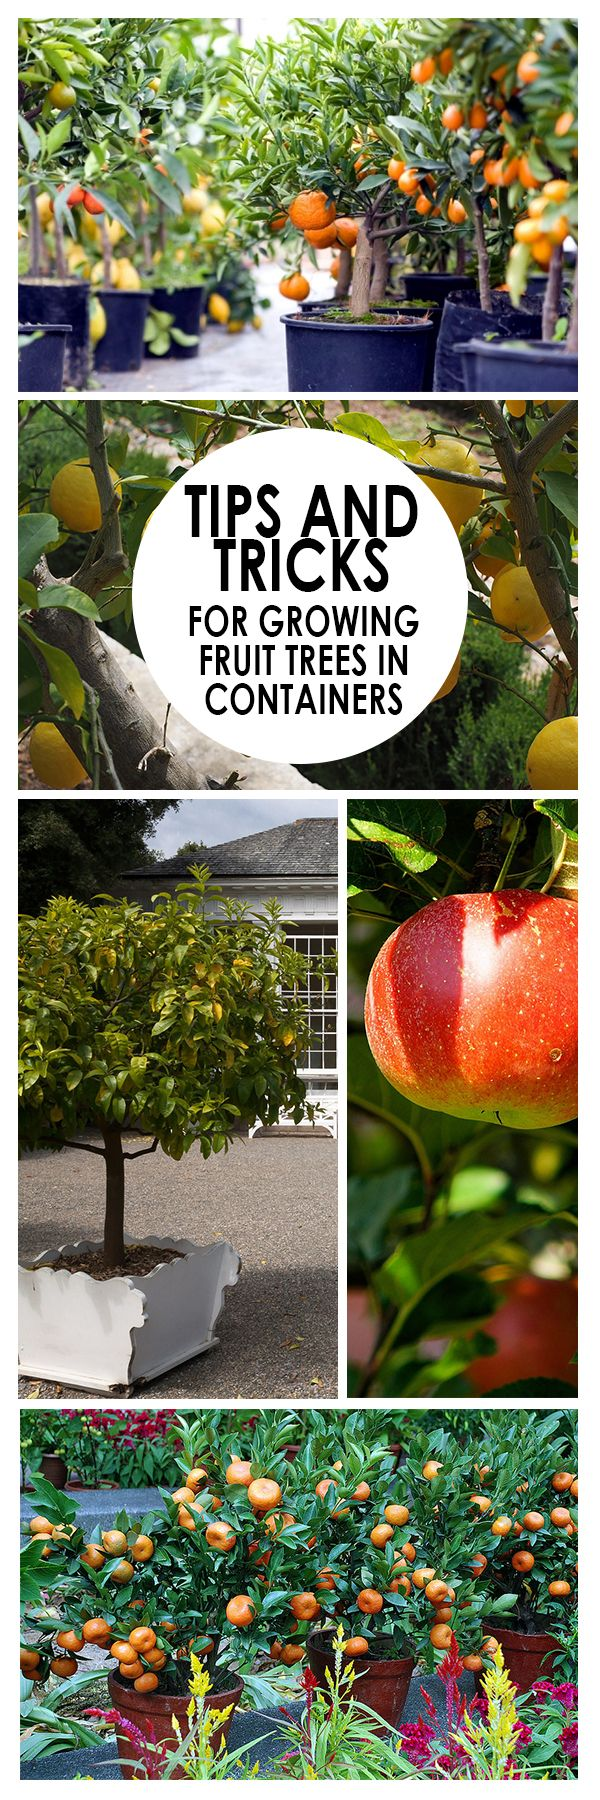 Fruit trees, while wonderful to have, are extremely difficult and time consuming to grow. If you don't have the outdoor space to accommodate such greenery, but you are dreaming of home grown fruit, try growing them in containers! Here are some great tips from HGTV and Garden.